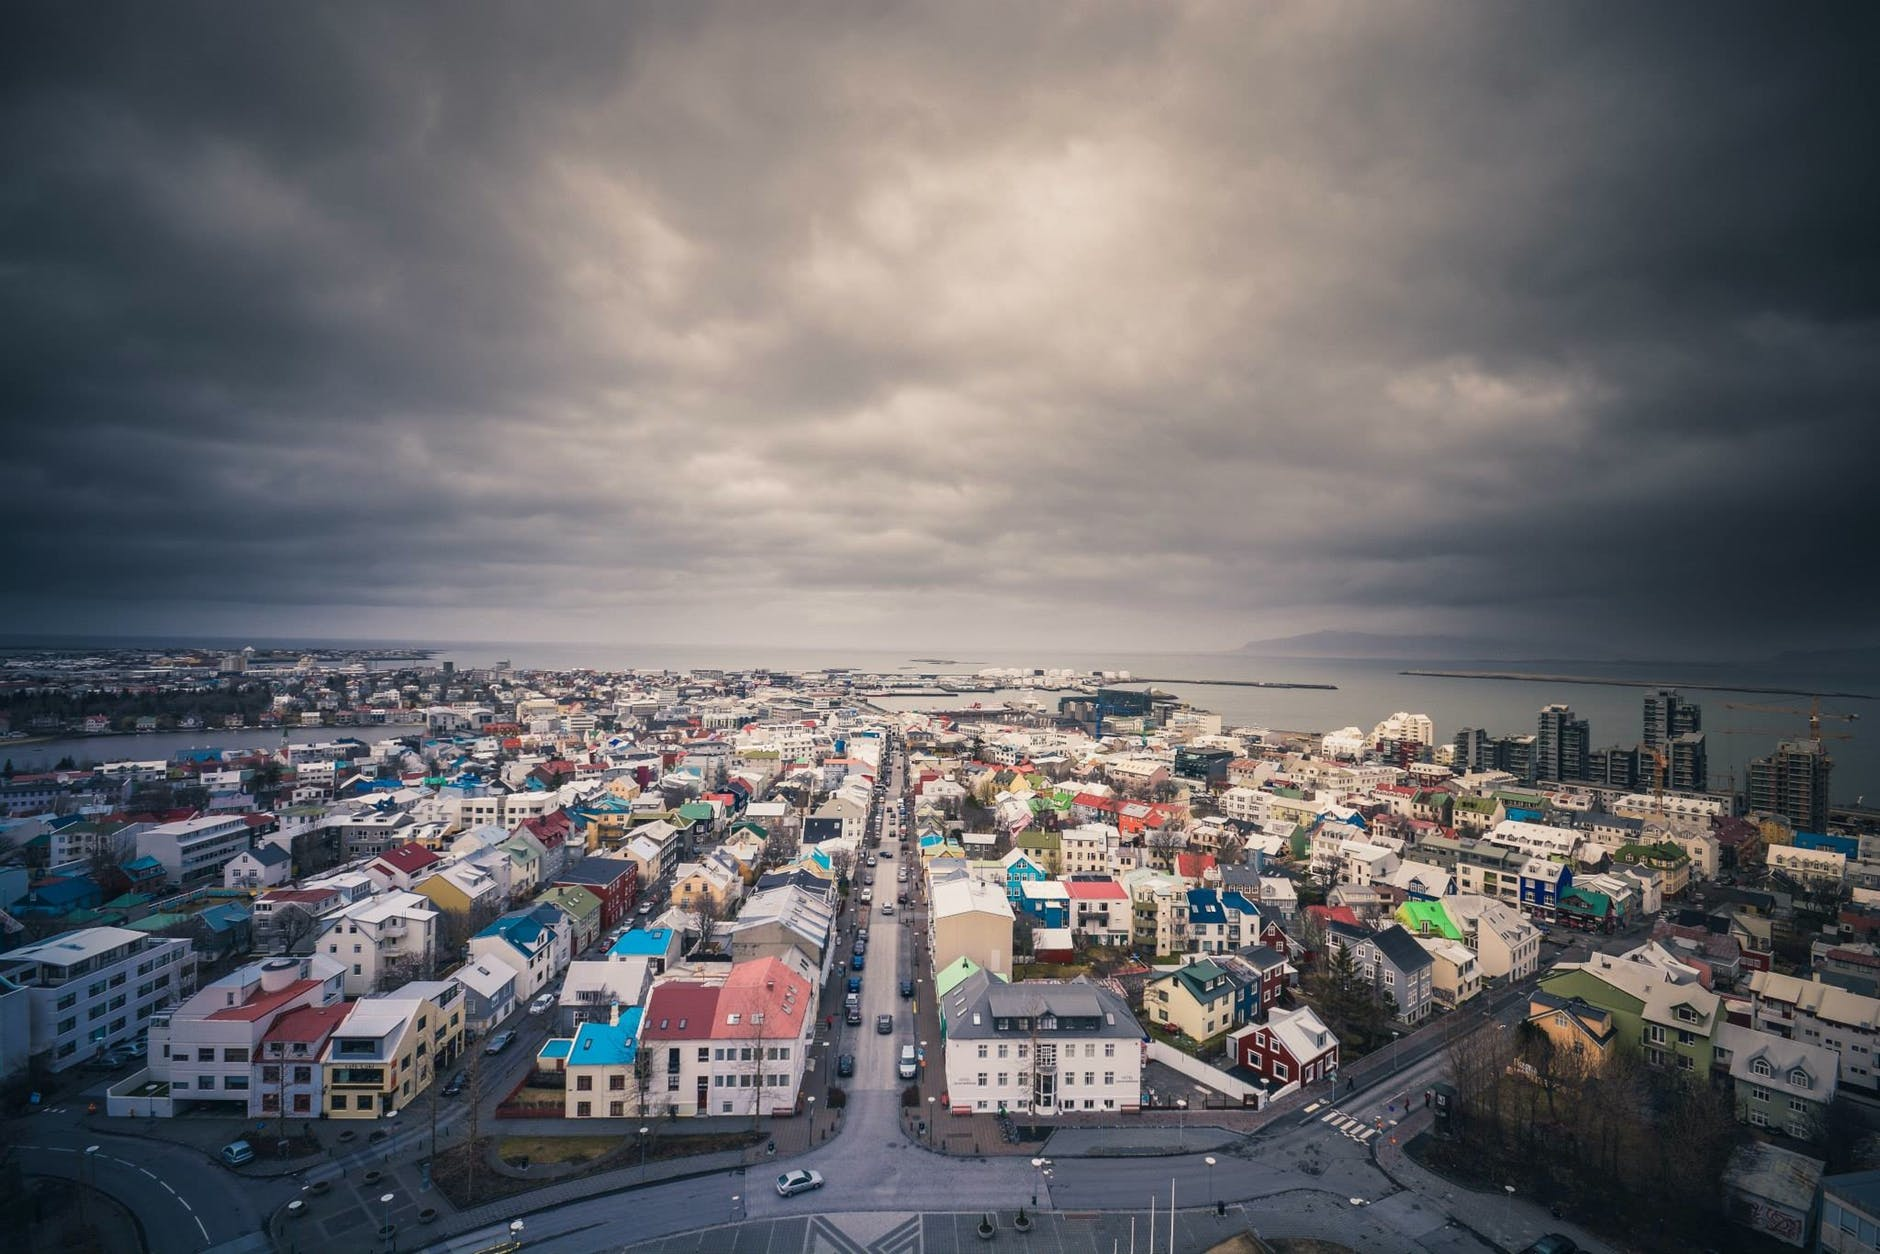 Reykjavik is a big city you should consider the tour operator who offers pick-up service